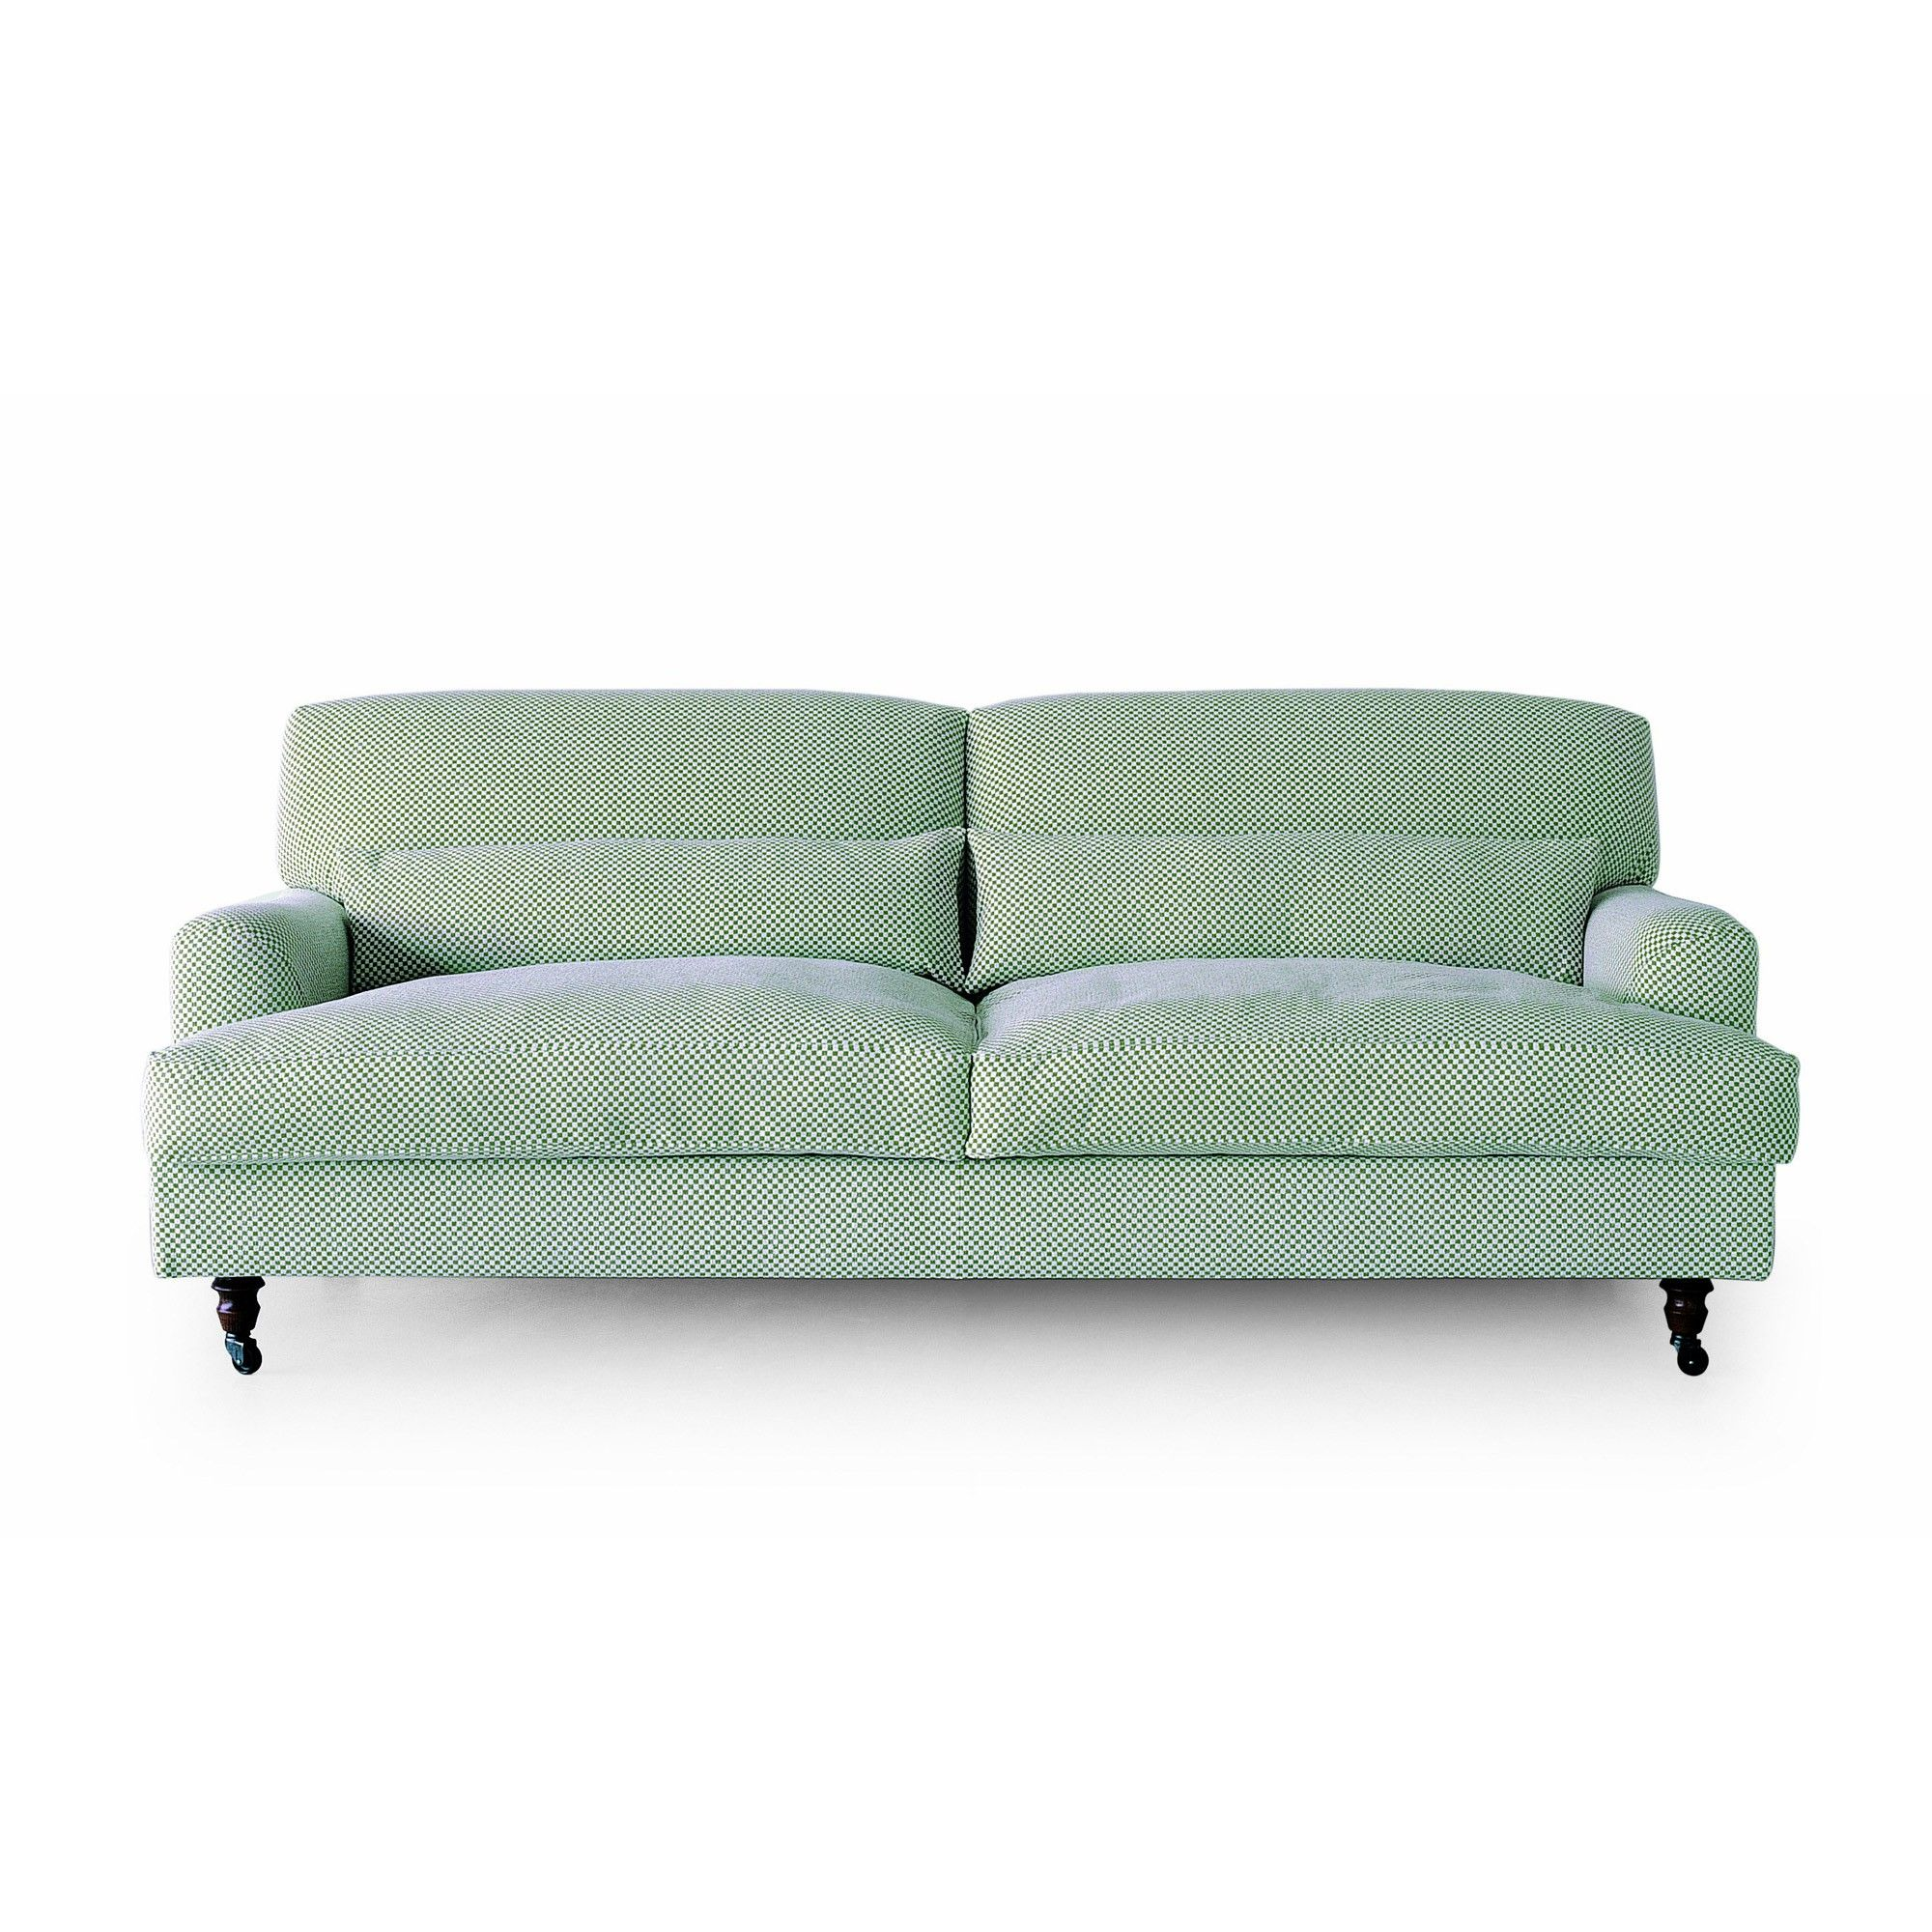 Raffles sofa Upholstered price £3920 at Skandium also for sale